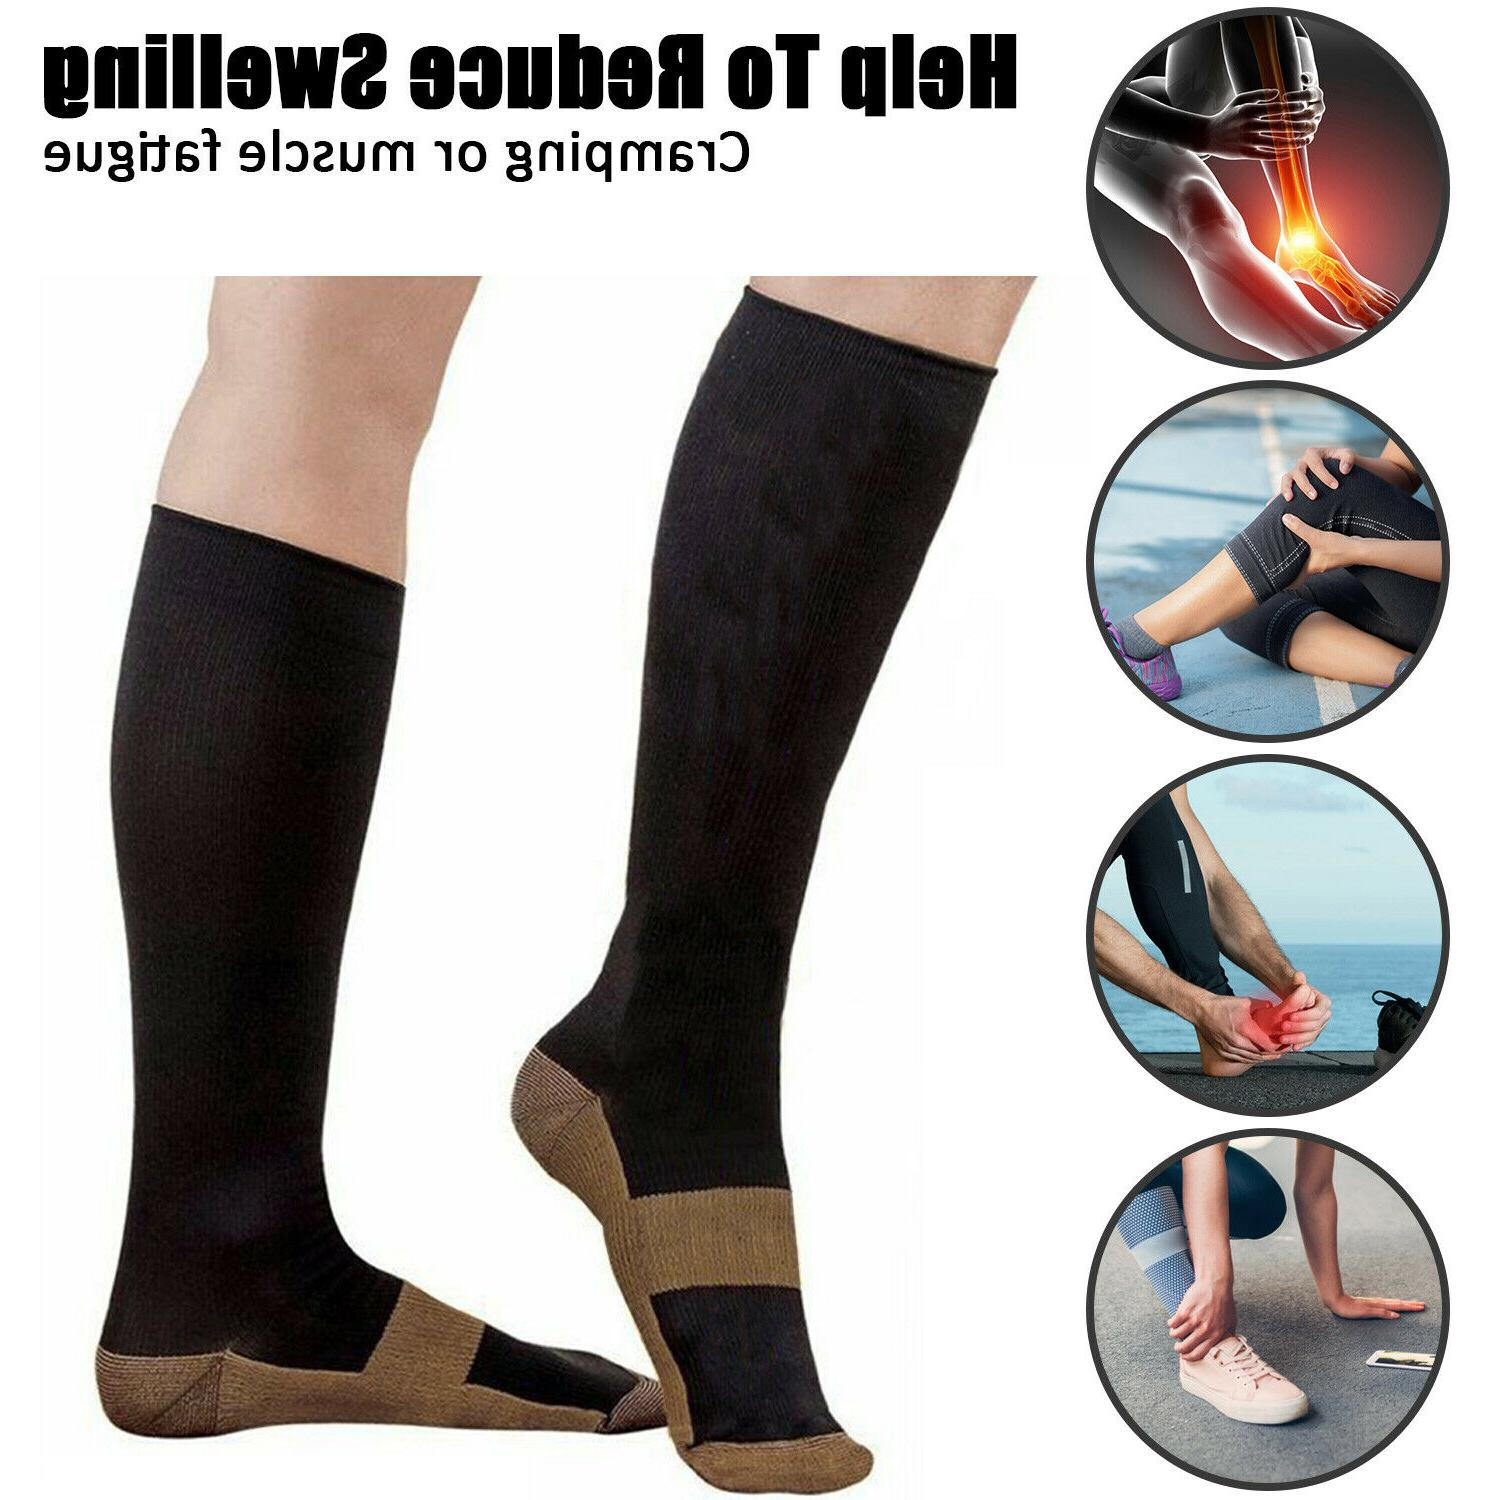 For Socks Ankle Support